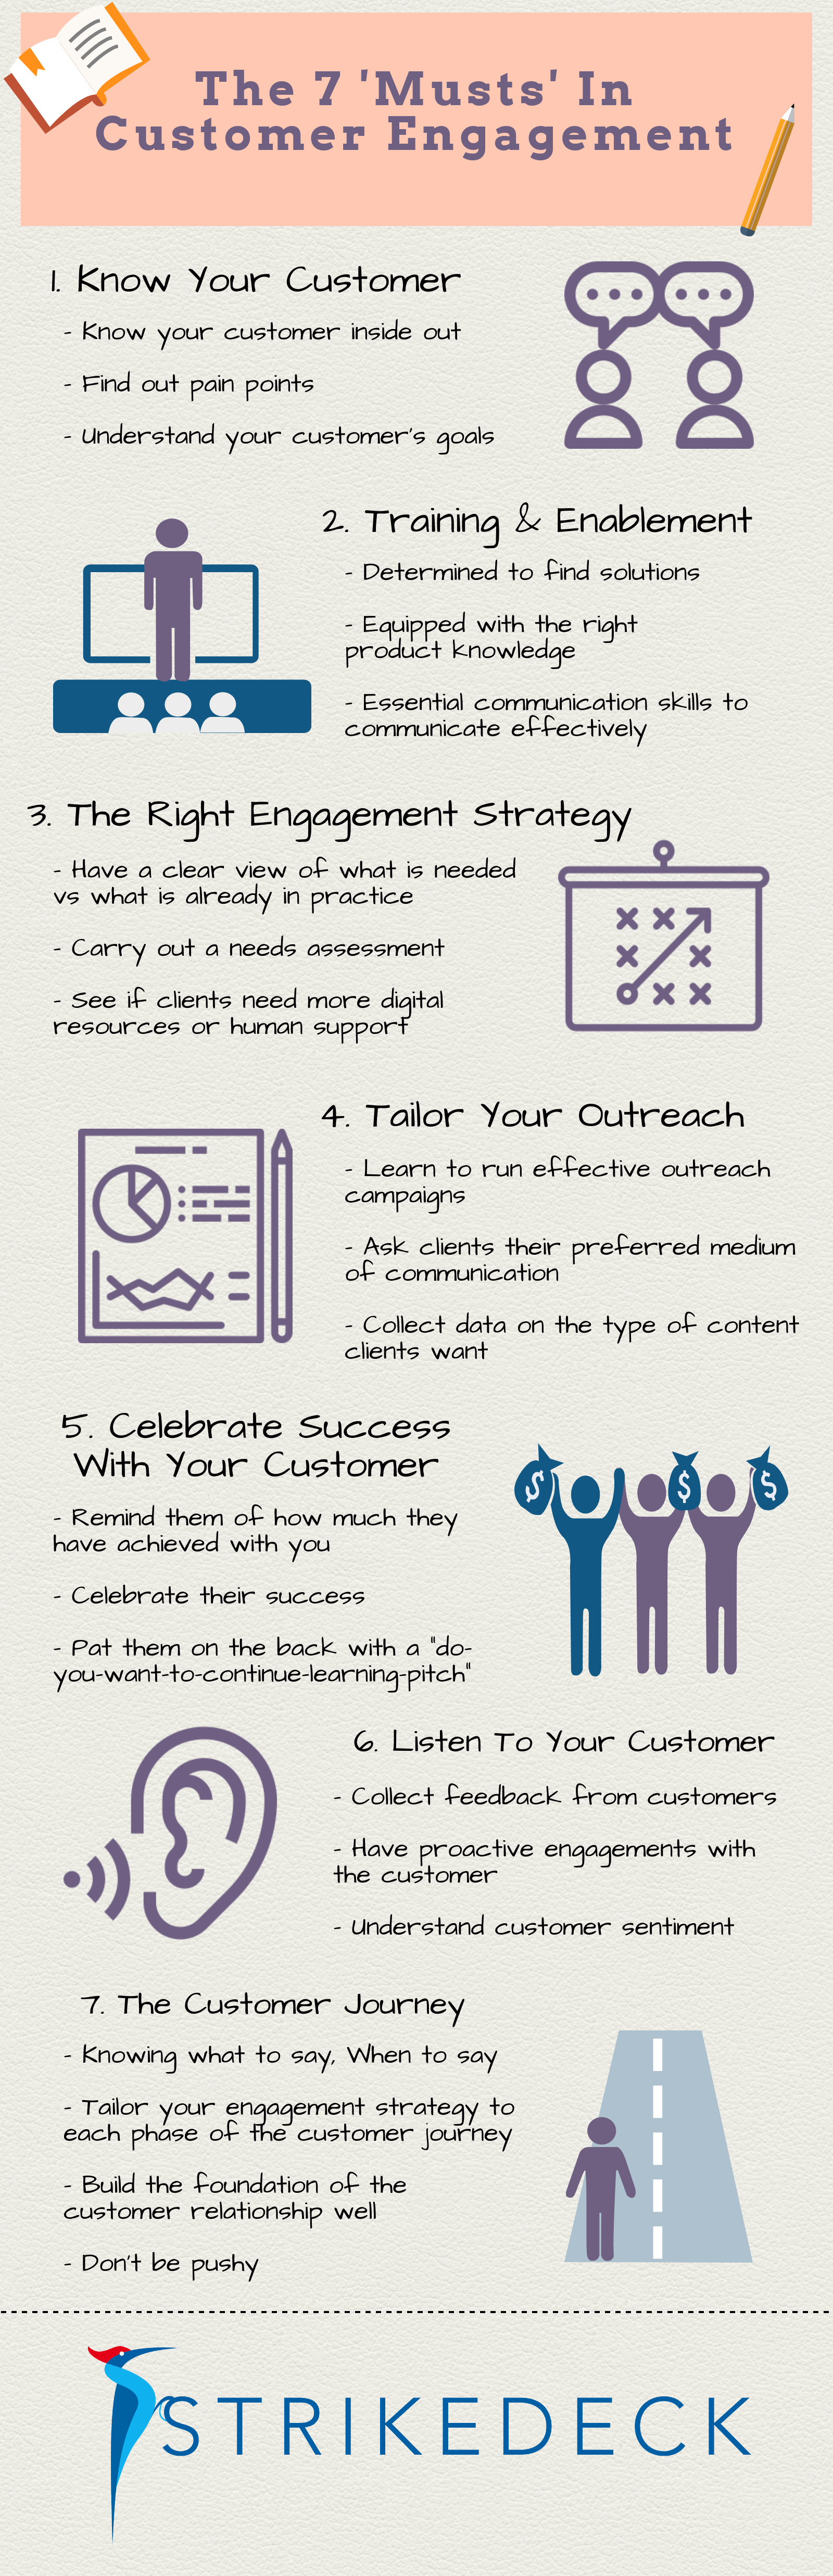 the-7-musts-in-customer-engagement-infographic